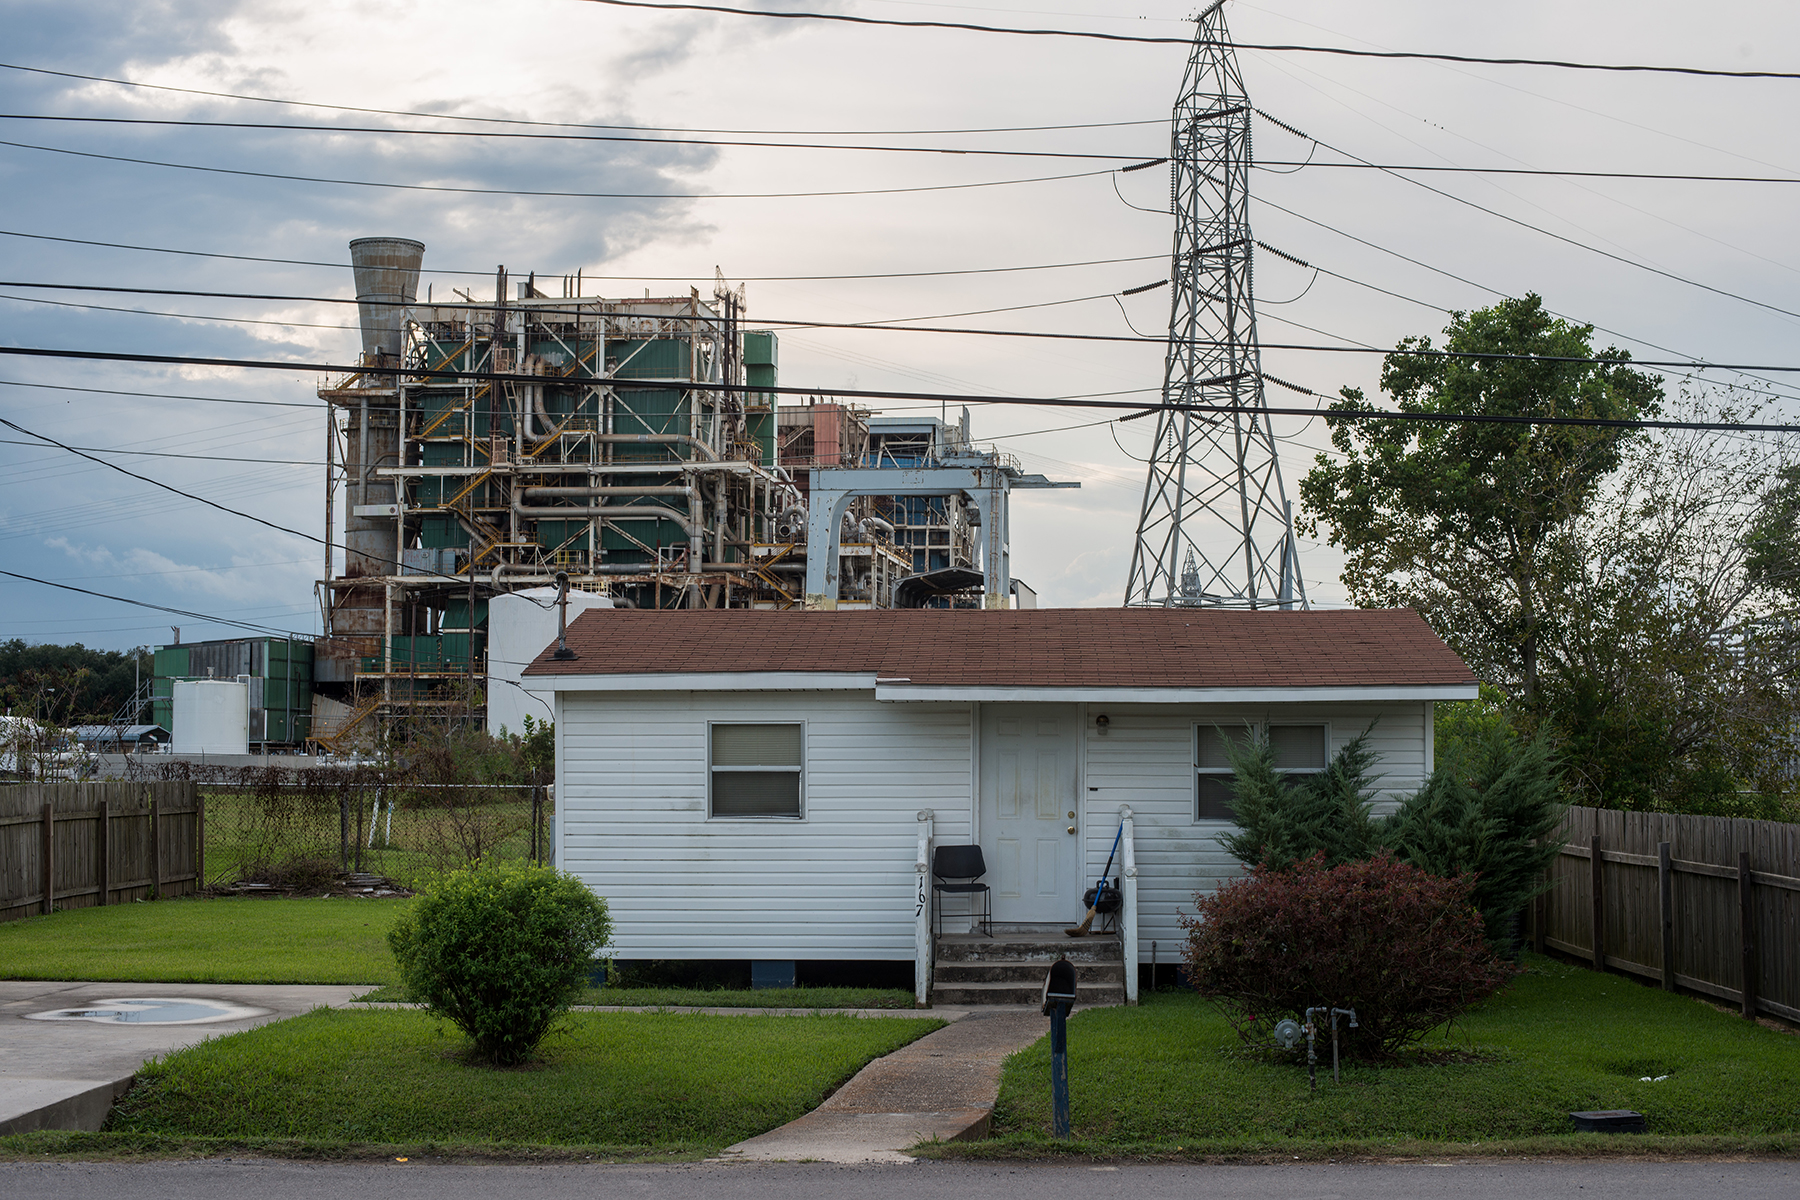 BATON ROUGE, LOUISIANA - OCTOBER 12: A house sits along the long stretch of River Road by the Mississippi River and the many chemical plants October 12, 2013. 'Cancer Alley' is one of the most polluted areas of the United States and lies along the once pristine Mississippi River that stretches some 80 miles from New Orleans to Baton Rouge, where a dense concentration of oil refineries, petrochemical plants, and other chemical industries reside alongside suburban homes. (Photo by Giles Clarke/Getty Images.)